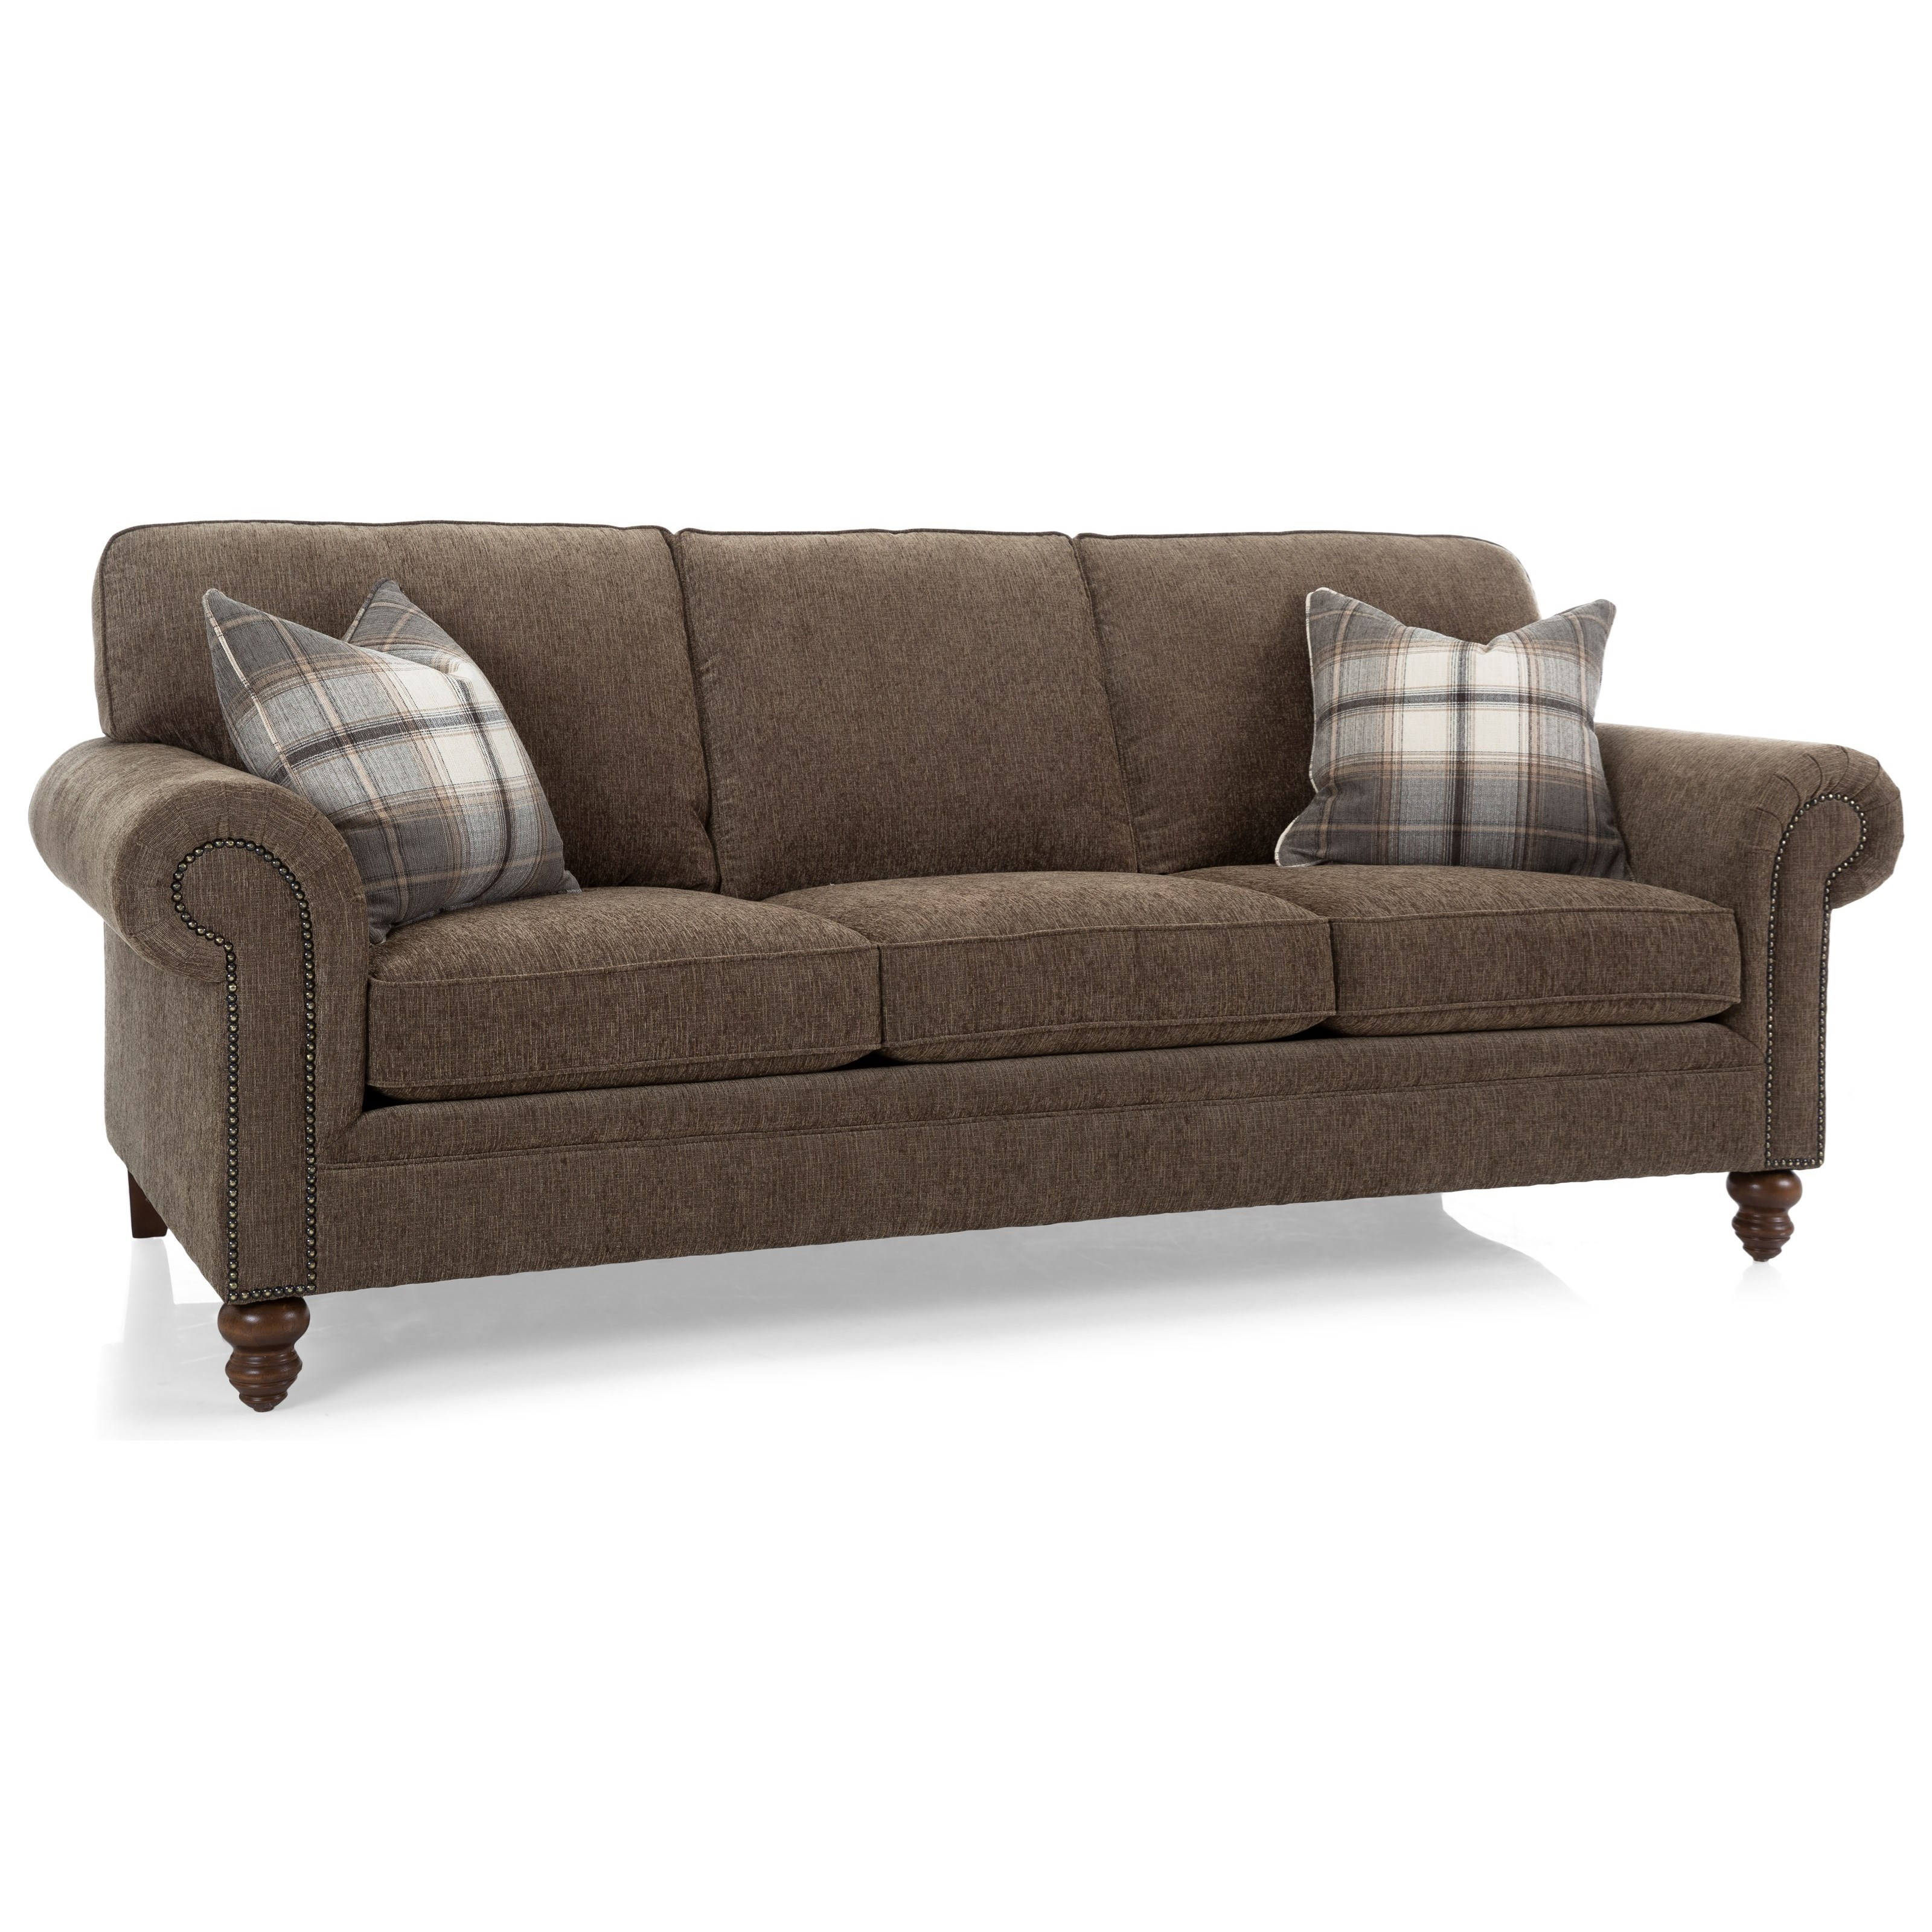 2628 Sofa by Decor-Rest at Rooms for Less